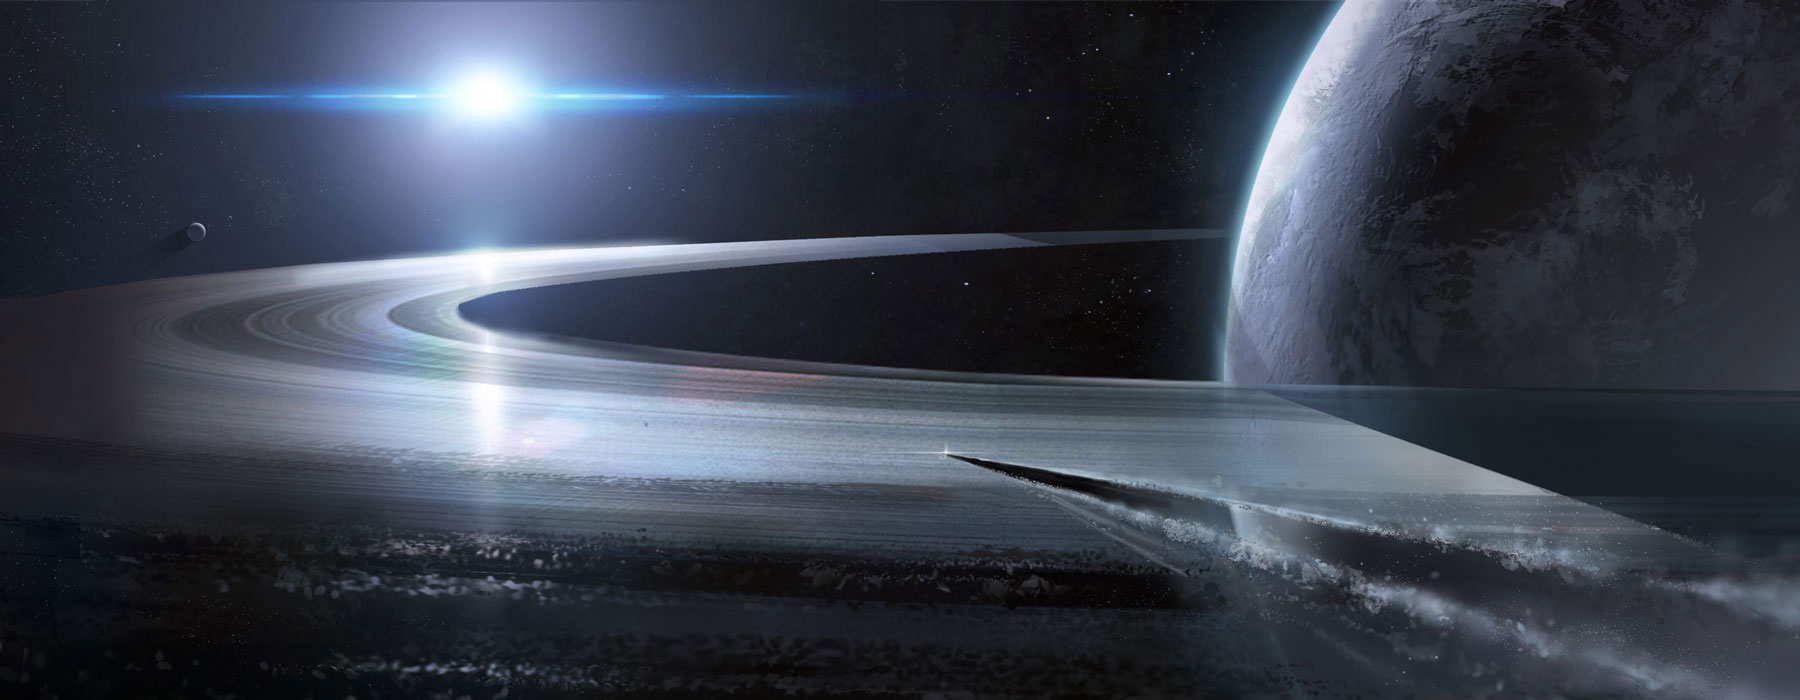 World Space Week Bioware Blog